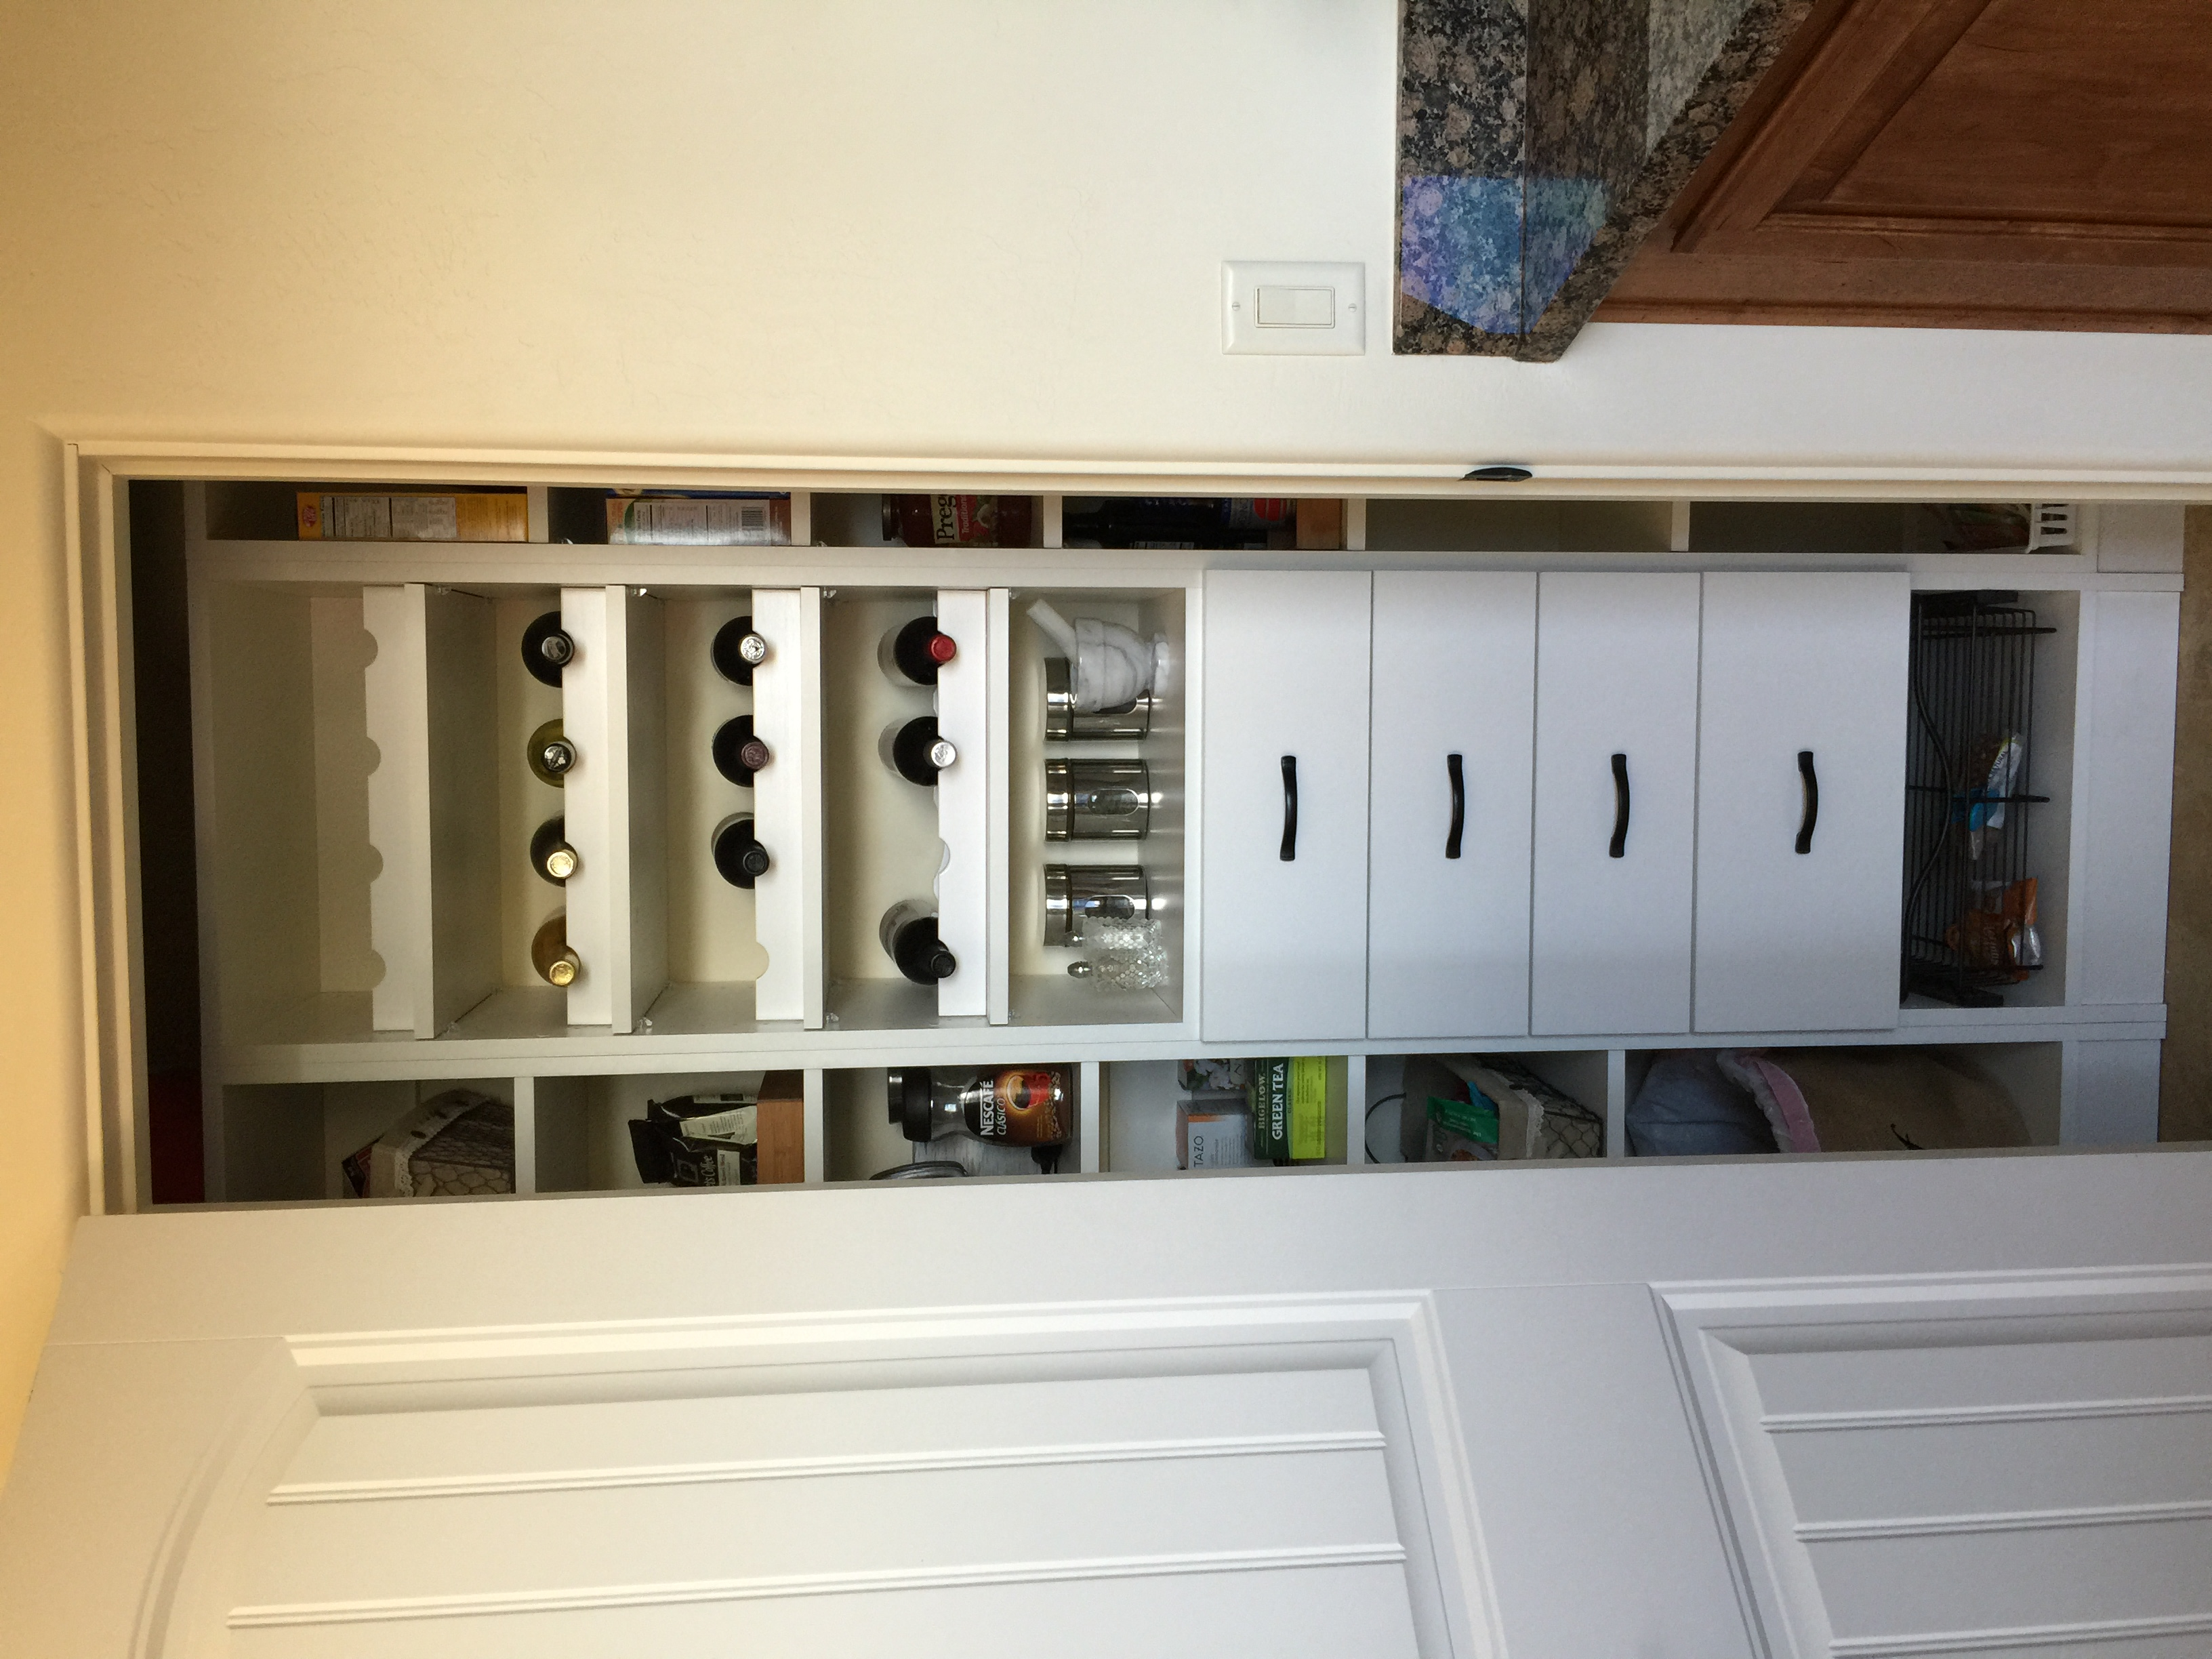 Pantry with shelves and wine racks